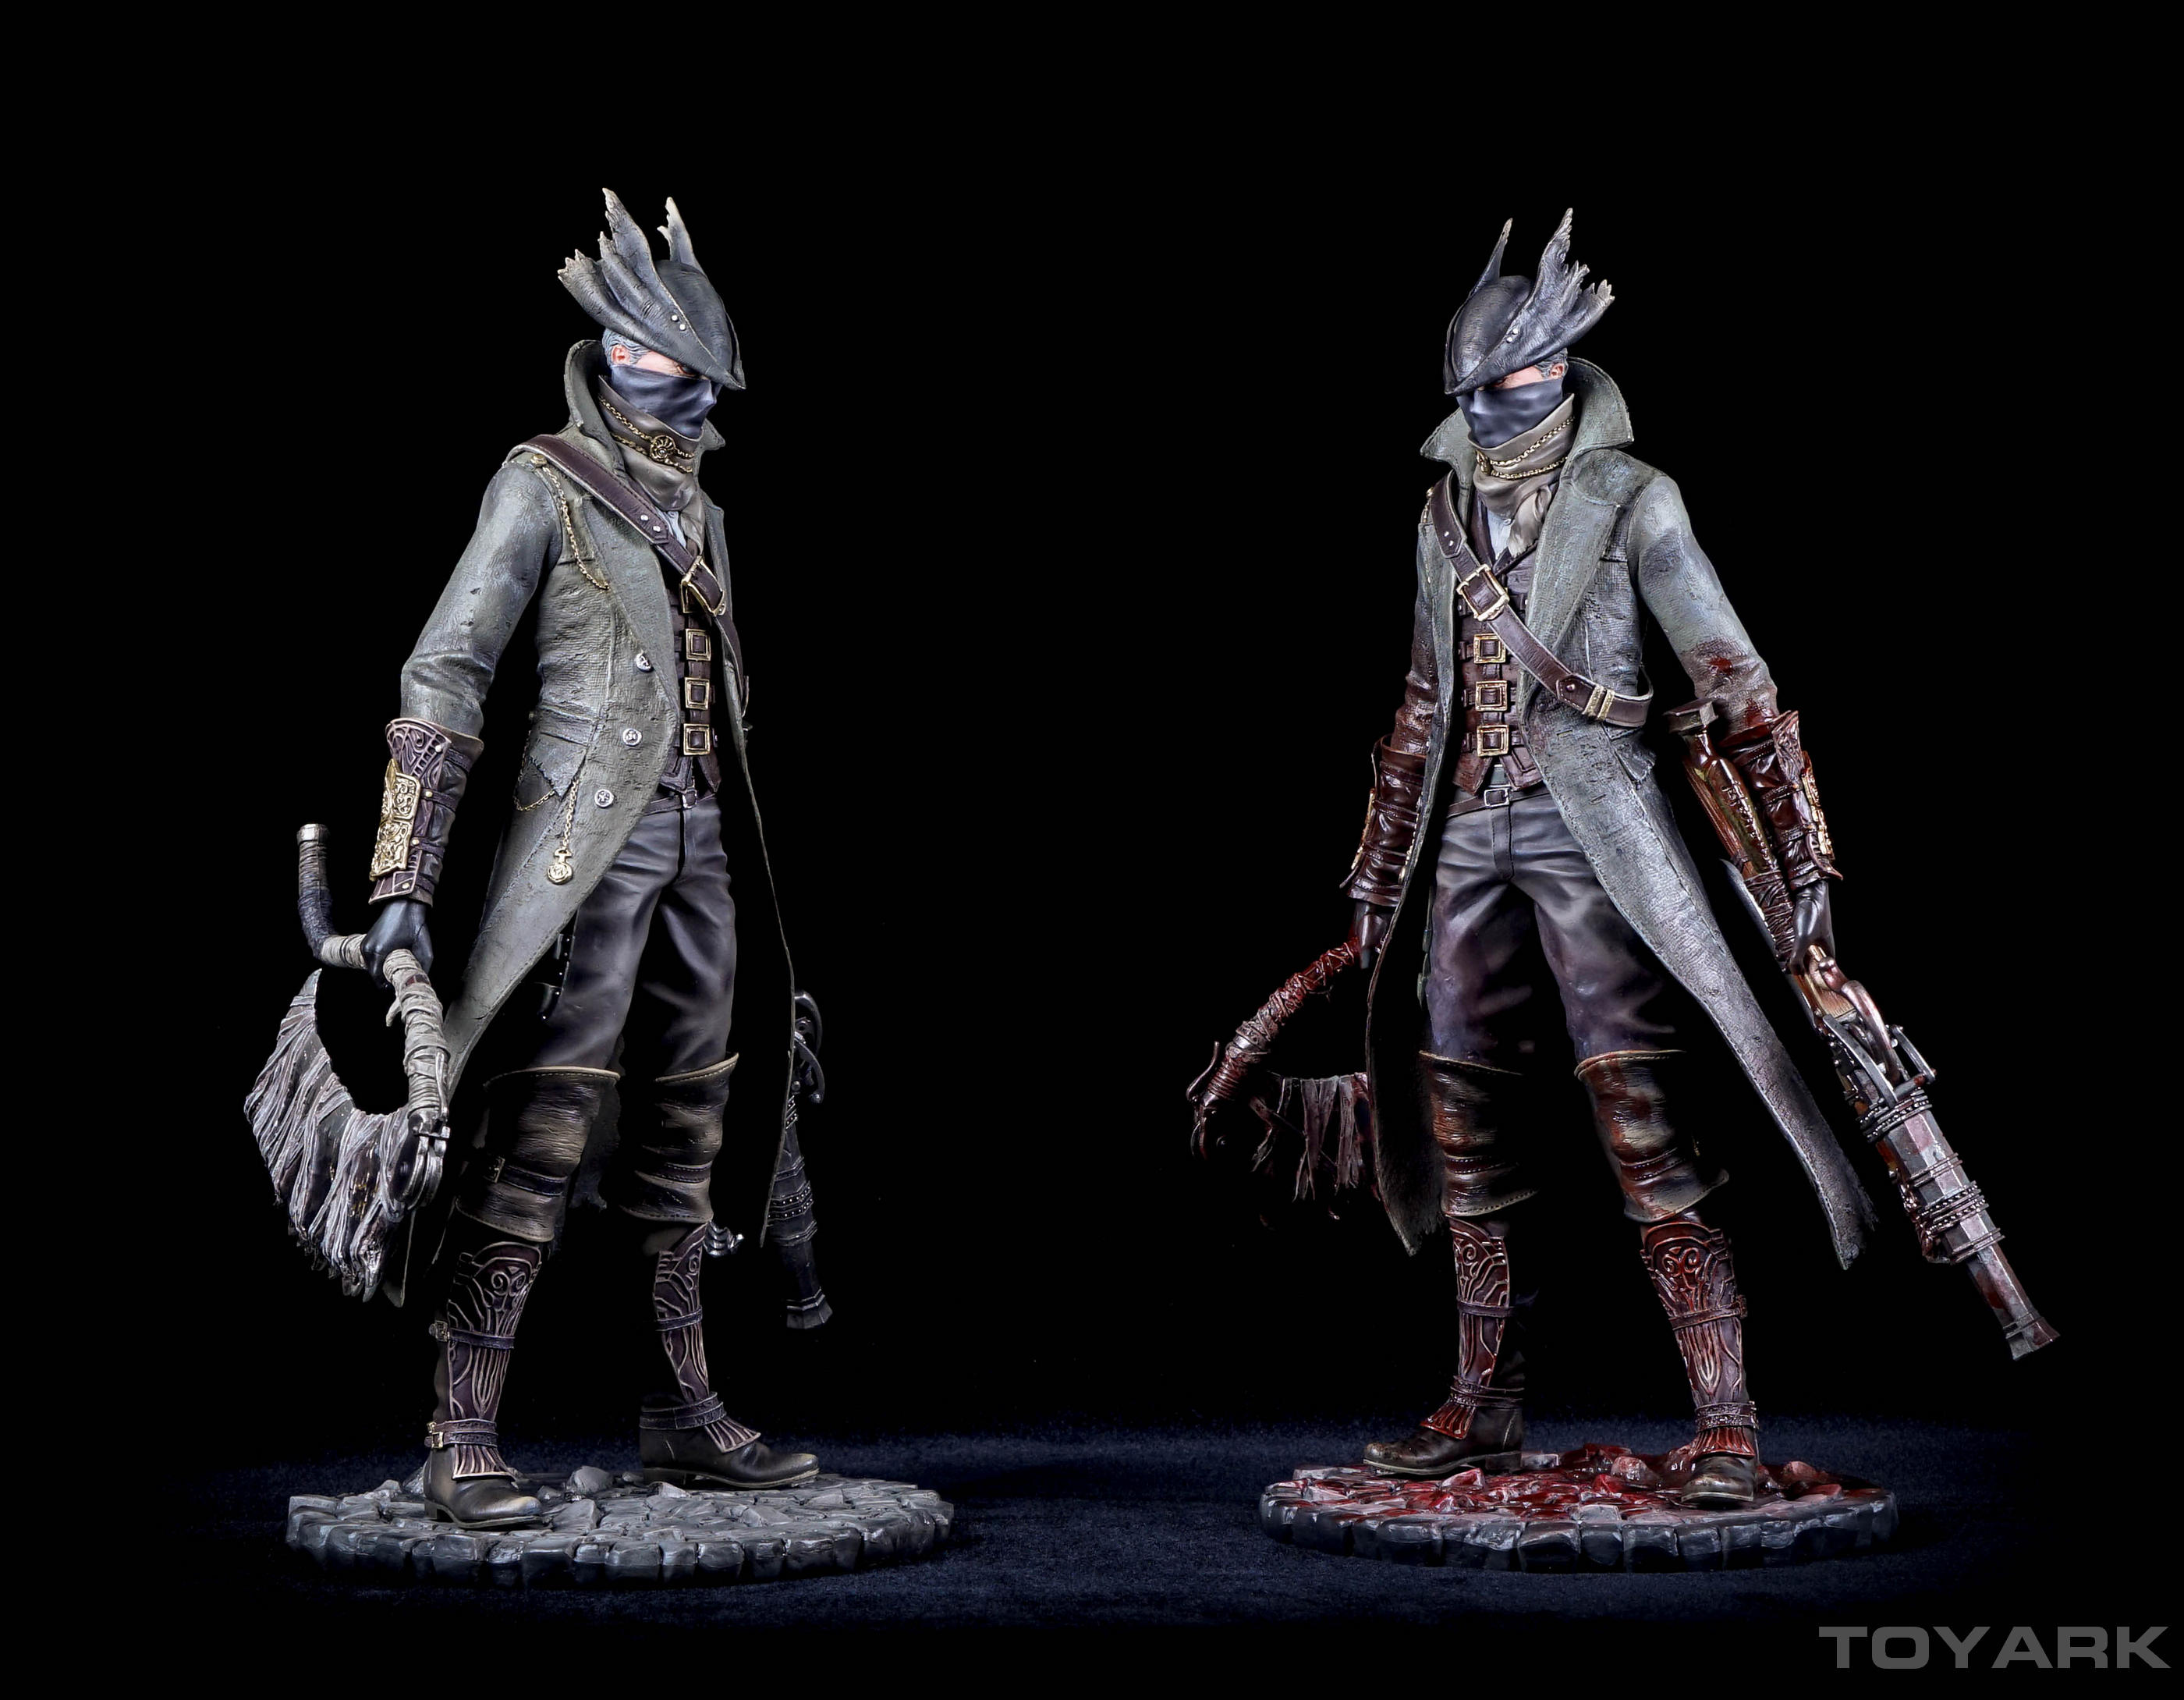 http://news.toyark.com/wp-content/uploads/sites/4/2016/02/Bloodborne-Hunter-PoB-Statue-044.jpg